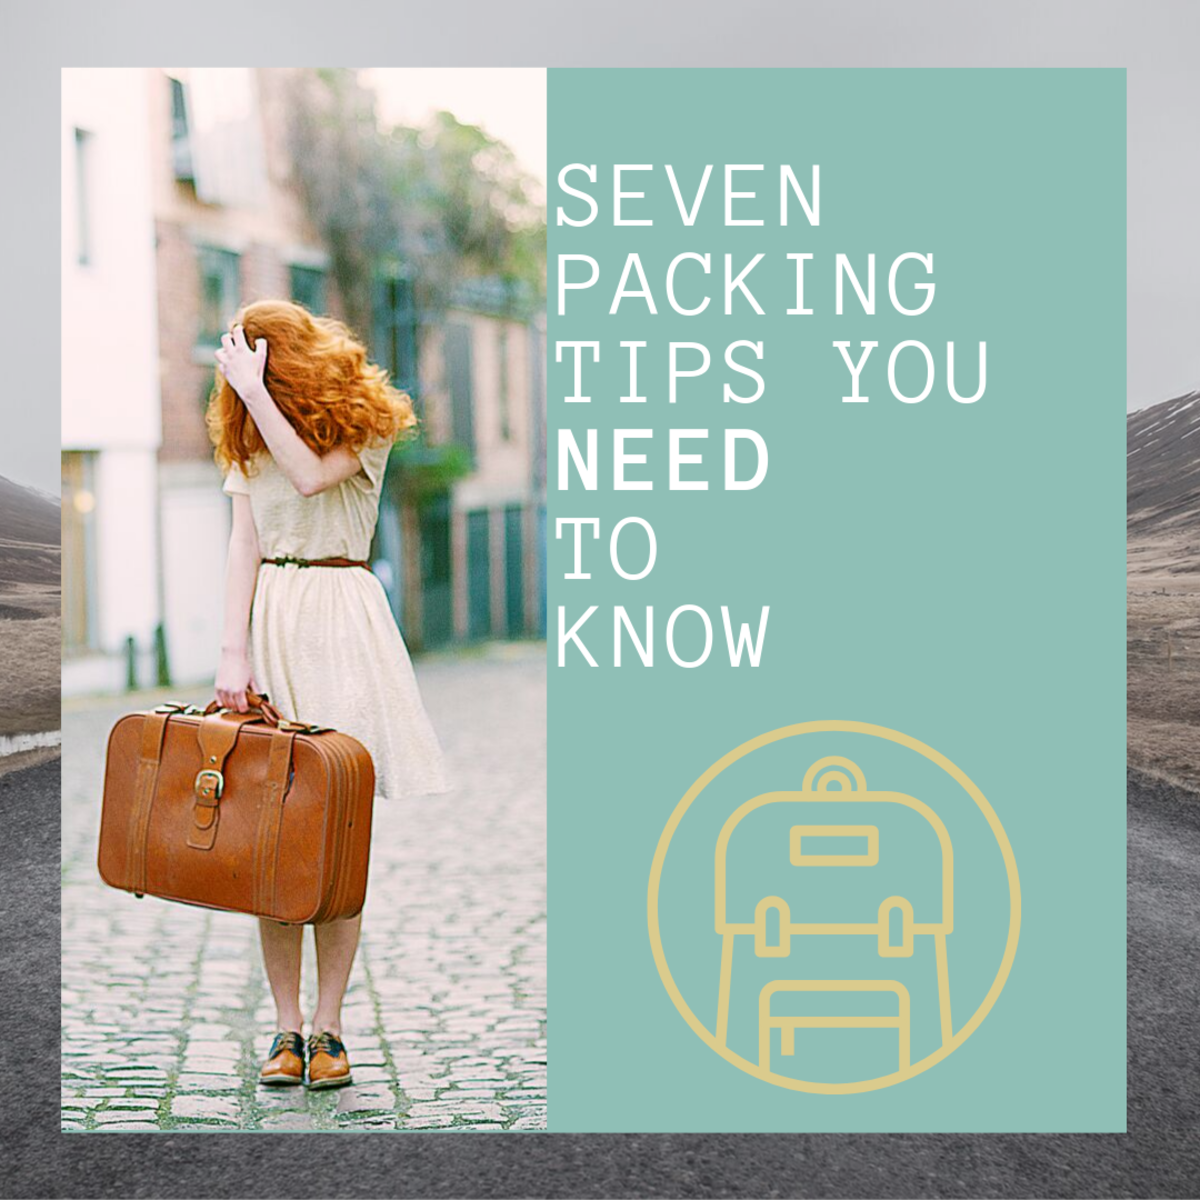 Seven Packing Tips You Need to Know